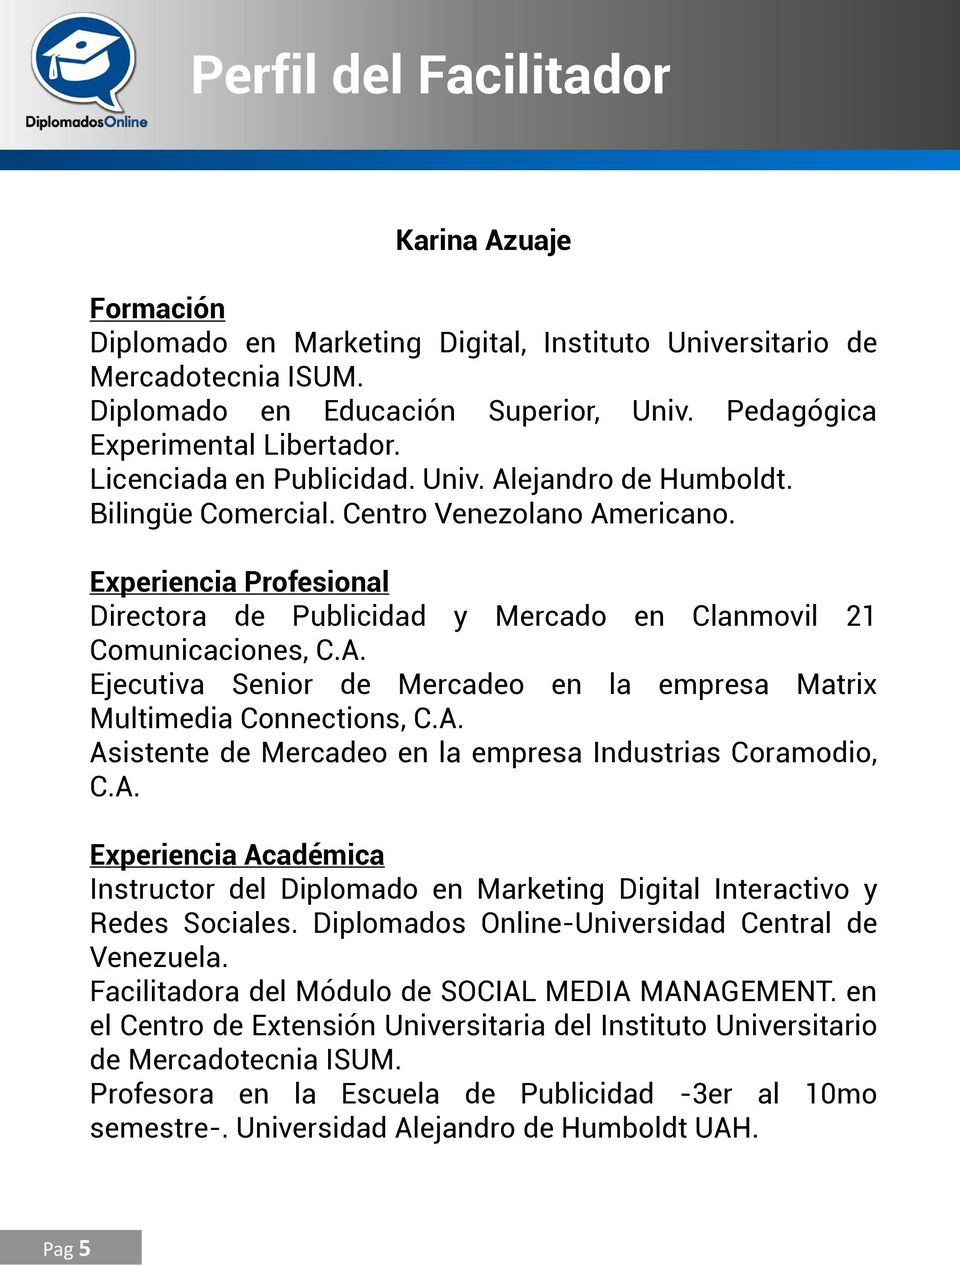 A. Asistente de Mercadeo en la empresa Industrias Coramodio, C.A. Experiencia Académica Instructor del Diplomado en Marketing Digital Interactivo y Redes Sociales.